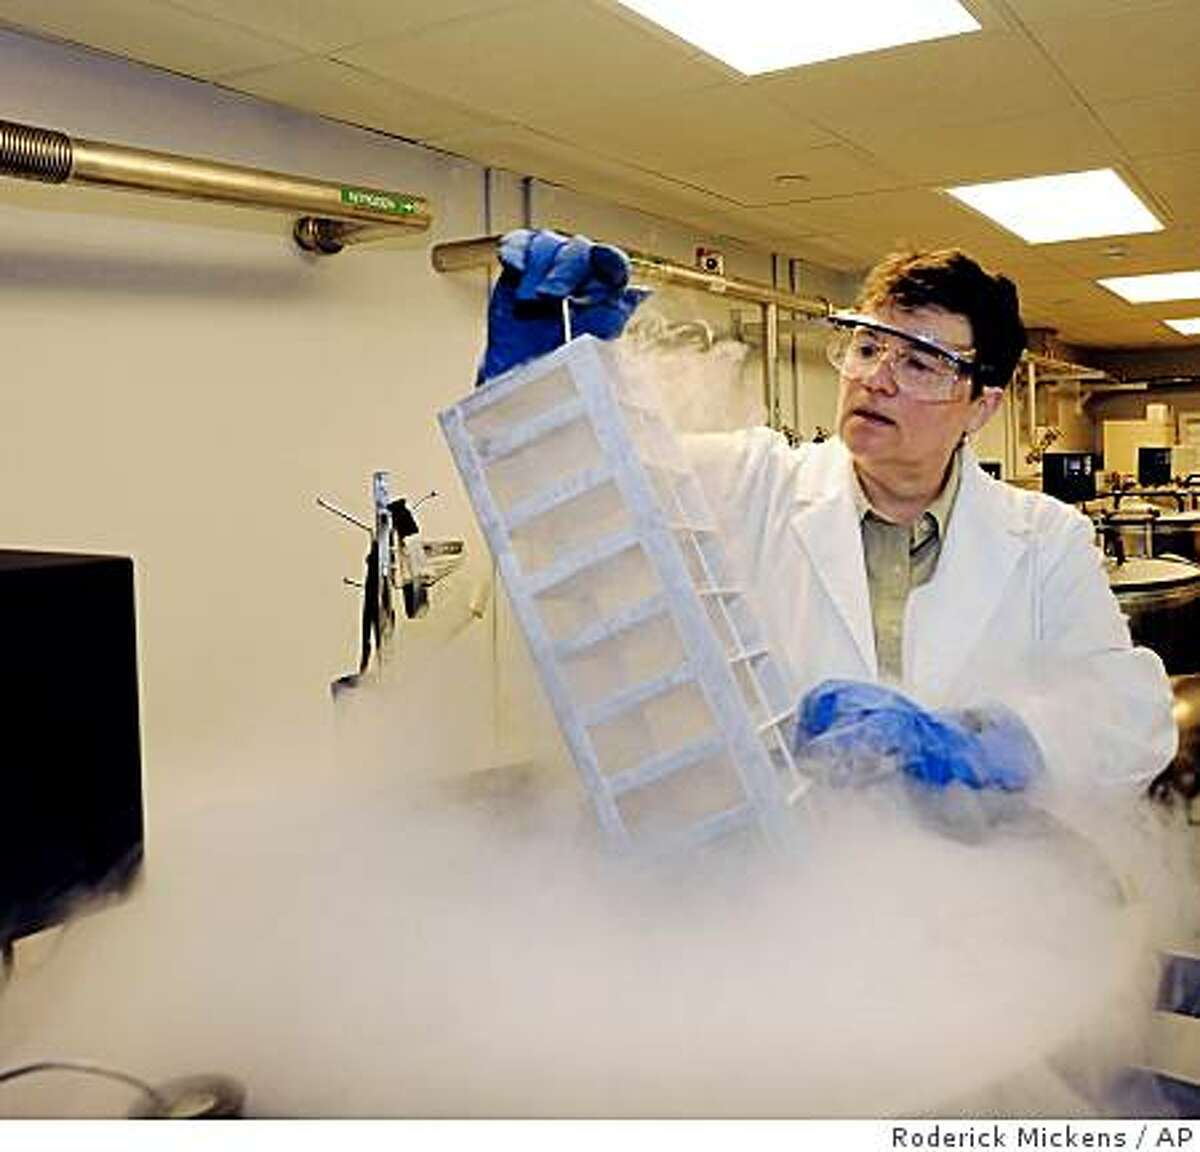 In this photo released by the American Museum of Natural History, Julie Feinstein, Manager of the museum's Ambrose Monell Collection works over a liquid nitrogen-cooled storage vat at the museum, Tuesday, July 7, 2009 in New York. In an agreement between Officials of the American Museum of Natural History and the U.S. National Park Service, frozen DNA samples from endangered species in the nation's parks are being added to the museum's collection to help researchers study and save the animals. (AP Photo/AMNH, Roderick Mickens) **NO SALES**